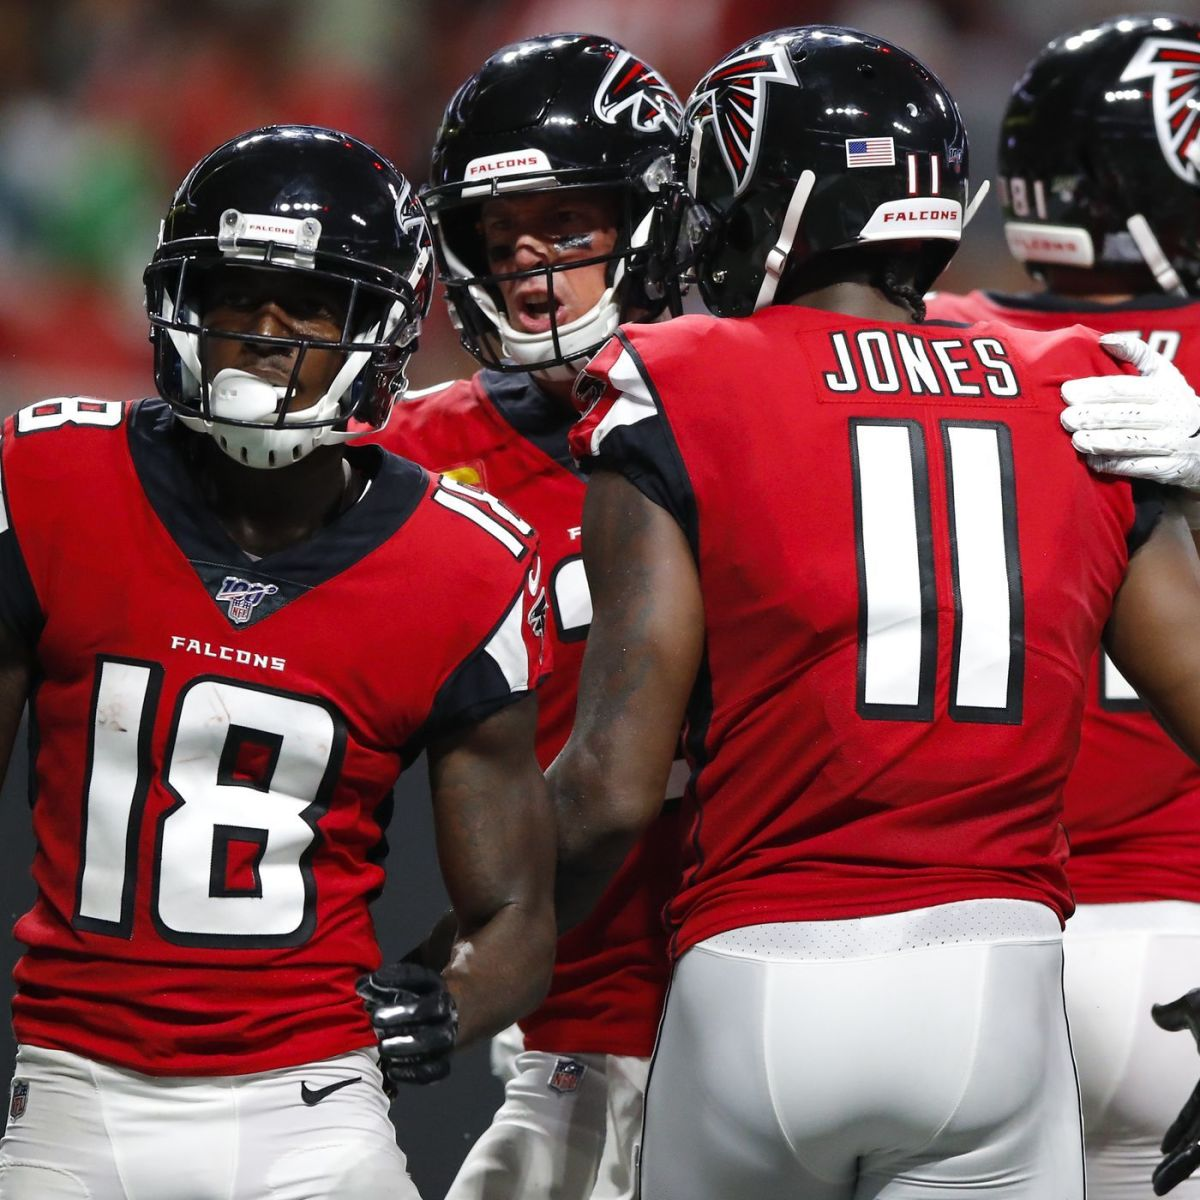 The future is murky but for now all points will be super bowl or busy while they still have Julio and Matt.